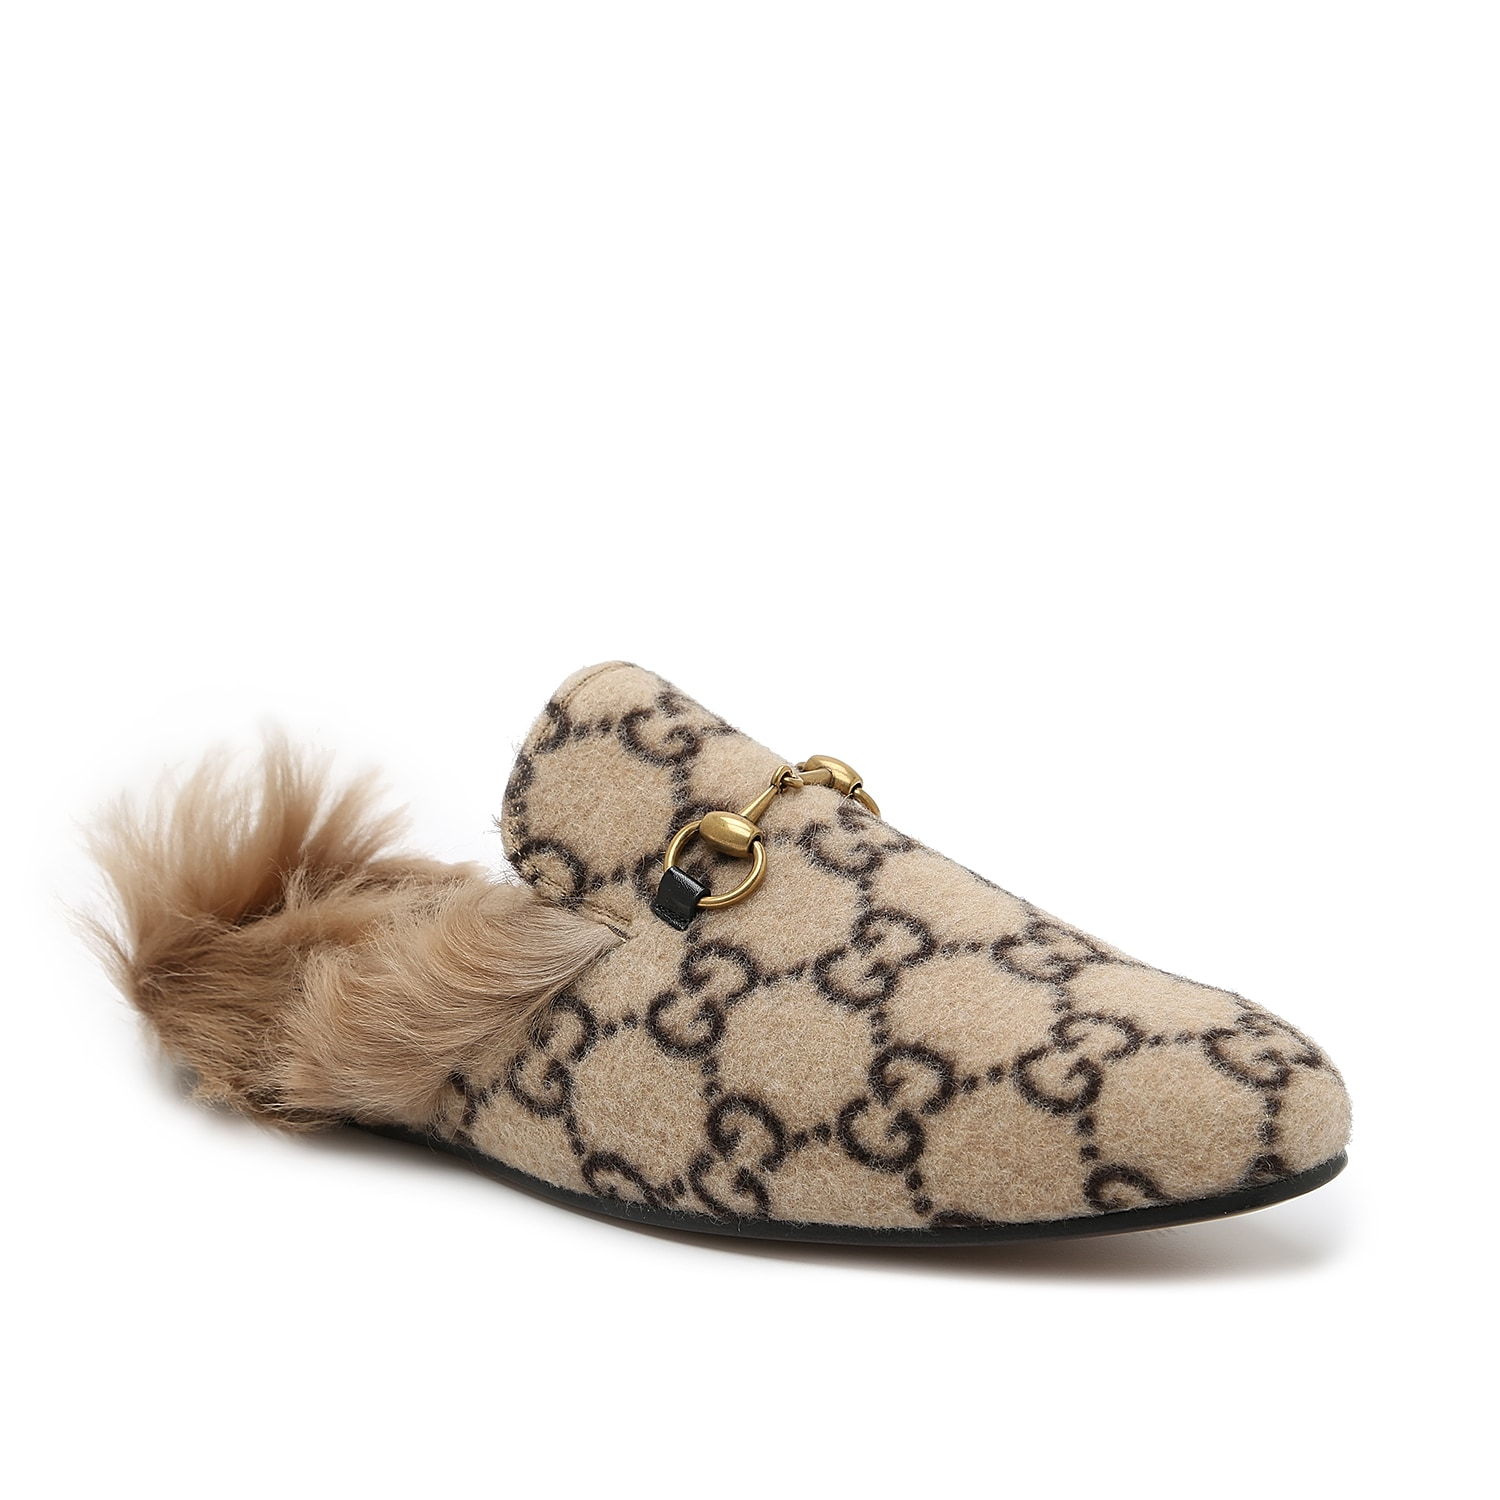 An unconventional mule that\\\'s entirely modern, the Princetown slipper is a Gucci mainstay design that\\\'s presented with GG patterning woven into the upper. Dyed lamb wool lines the footbed for plush stepping and a backless silhouette makes slip-on comfort a dream. A signature horsebit accessorizes the elongated toe for a final flourish of upscale style.   Made in Italy from carefully selected materials. To extend product life, protect from direct light, heat, and rain. Fill shoe with tissue paper to help maintain the shape and absorb humidity. Store in the provided flannel bag and structured shoe box.